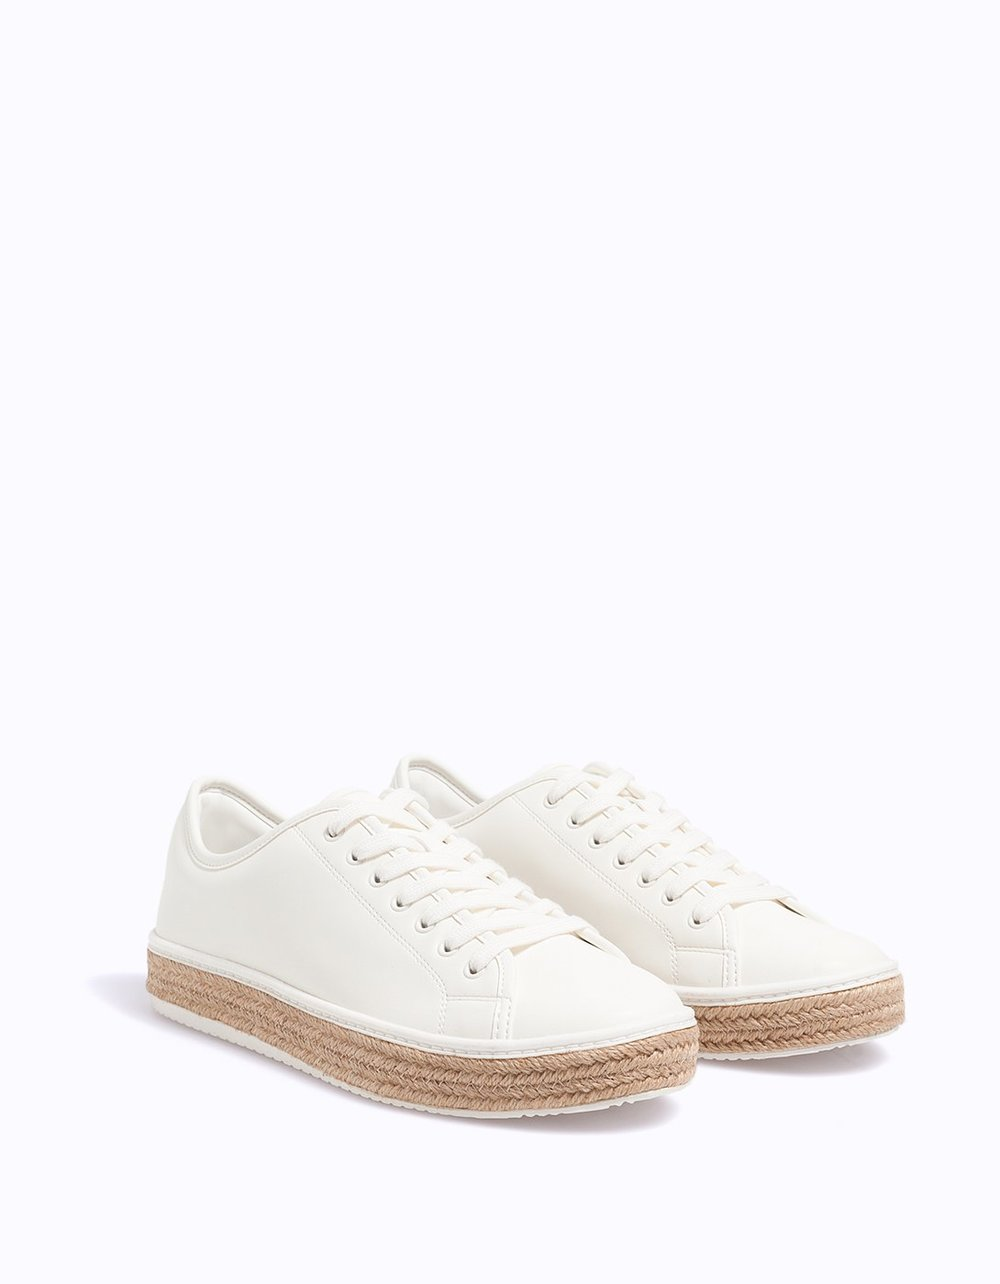 Stradivarius Trainers